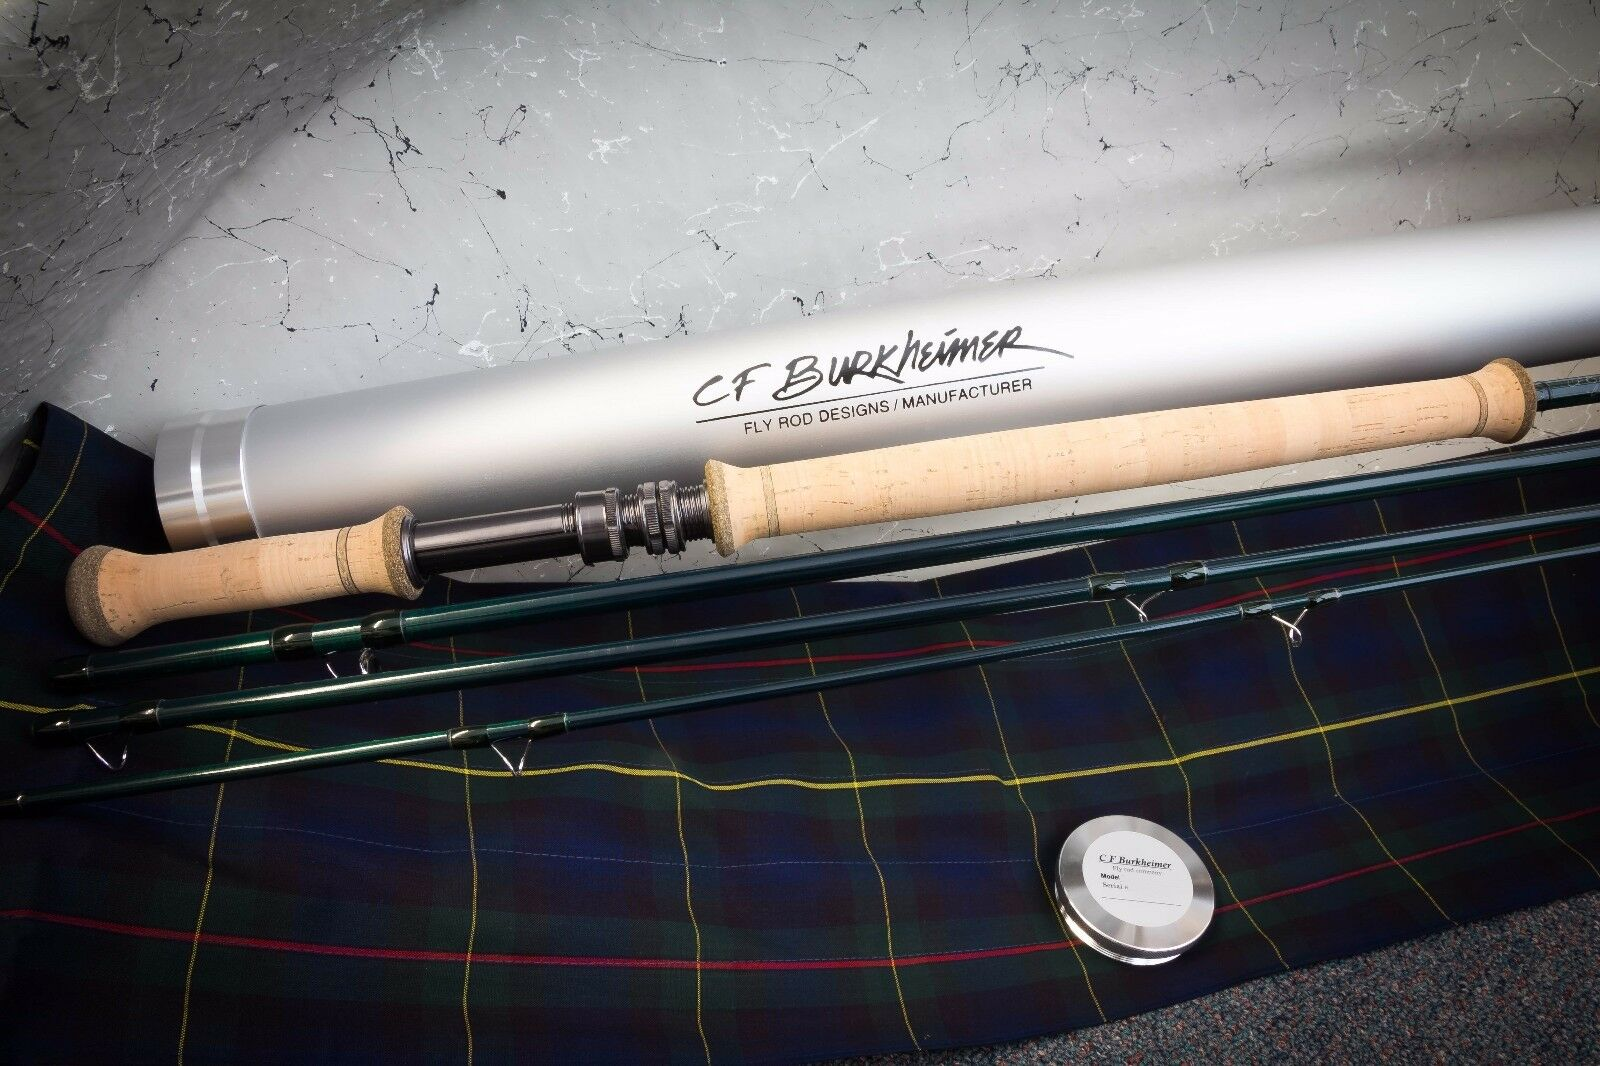 CF Burkheimer 8134-4 Spey Rod - Classic Finish - New - FREE Shipping